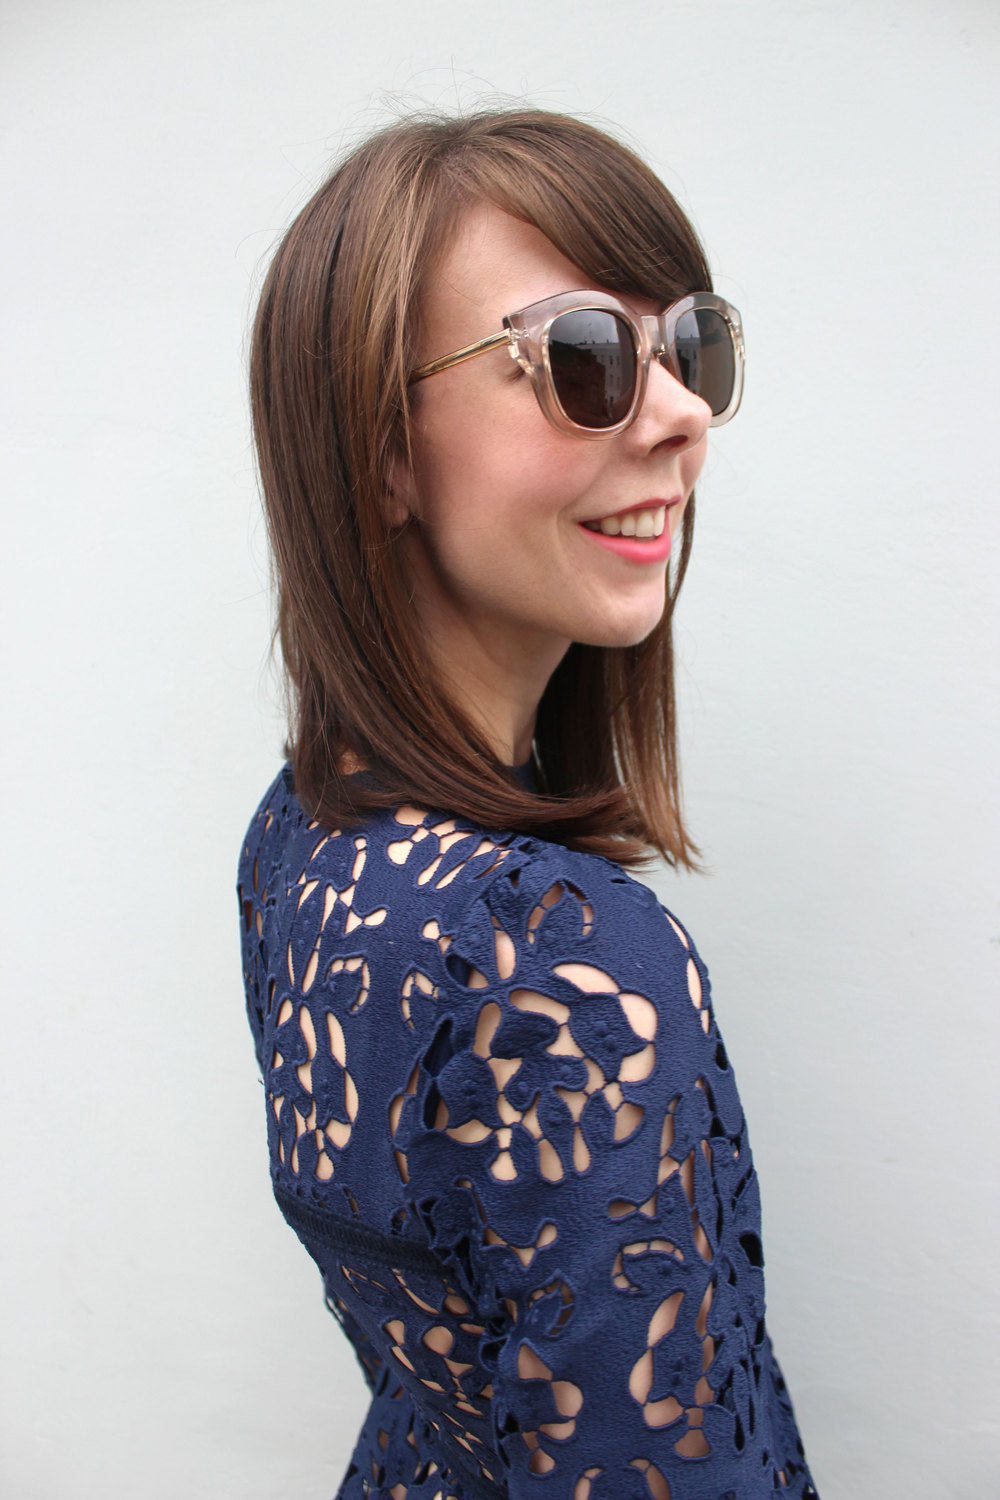 Zara lace dress, Le Specs sunglasses, Topshop lipstick